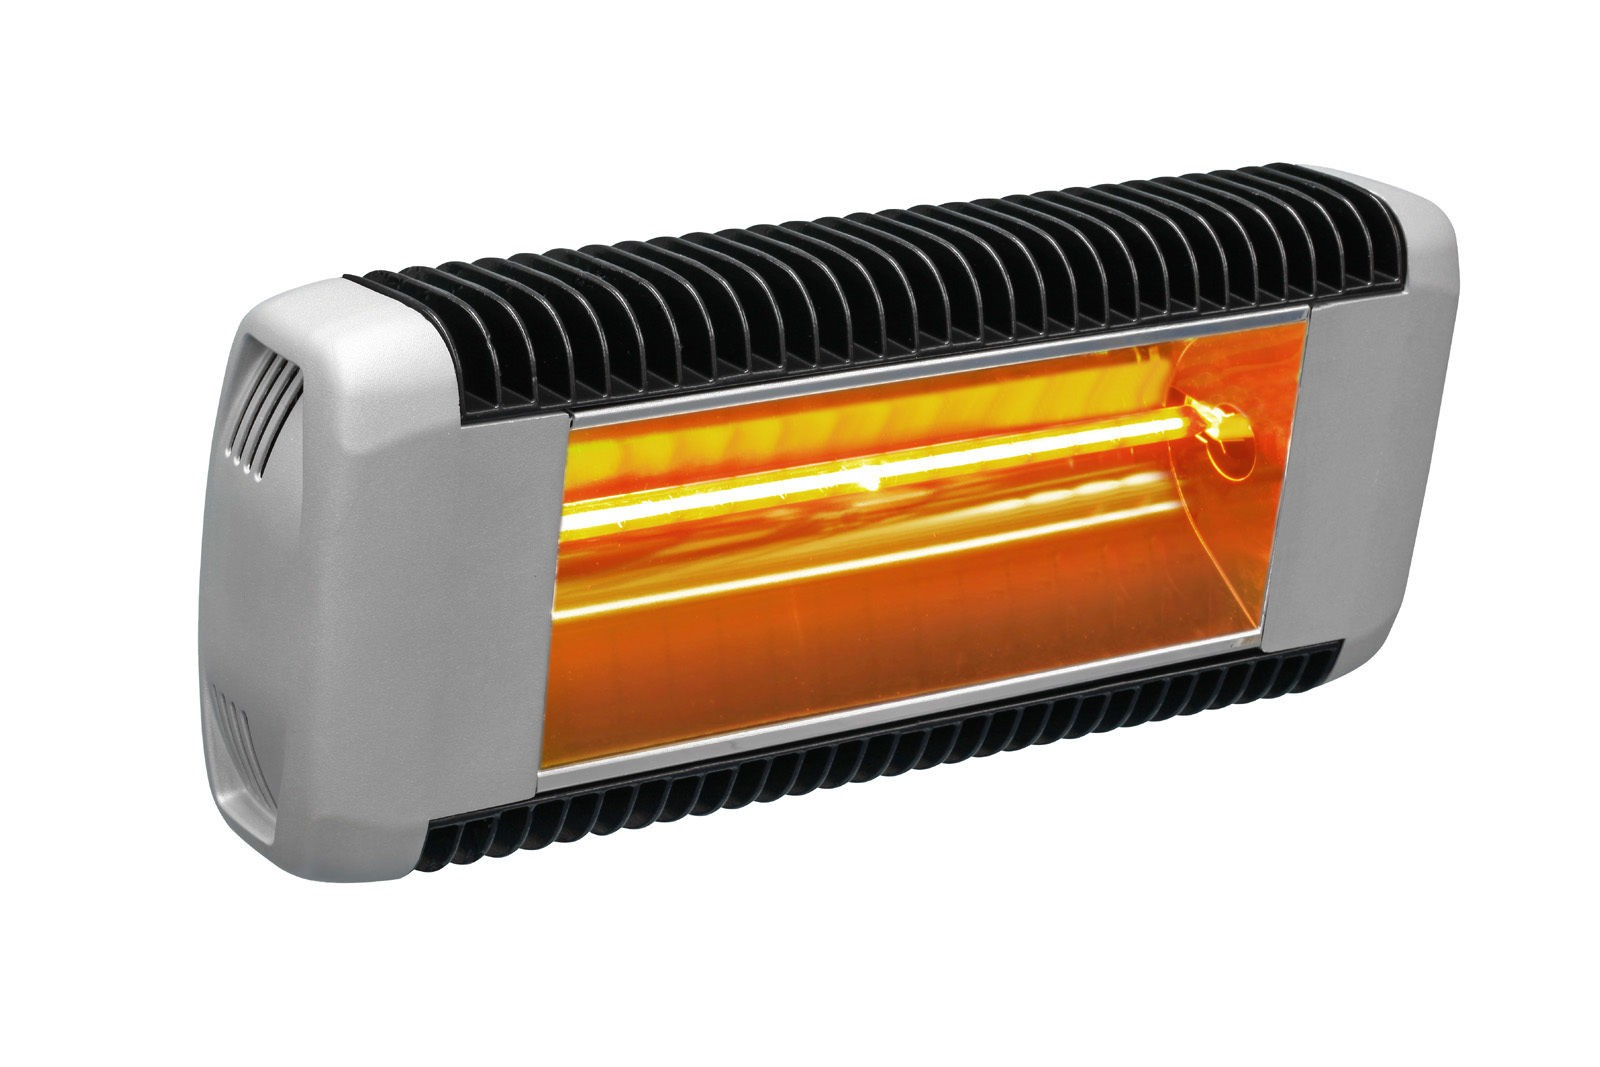 Varma Tandem Infrared IRK 2000W IPX5 Electric Heater for Patios, Varandas, Halls